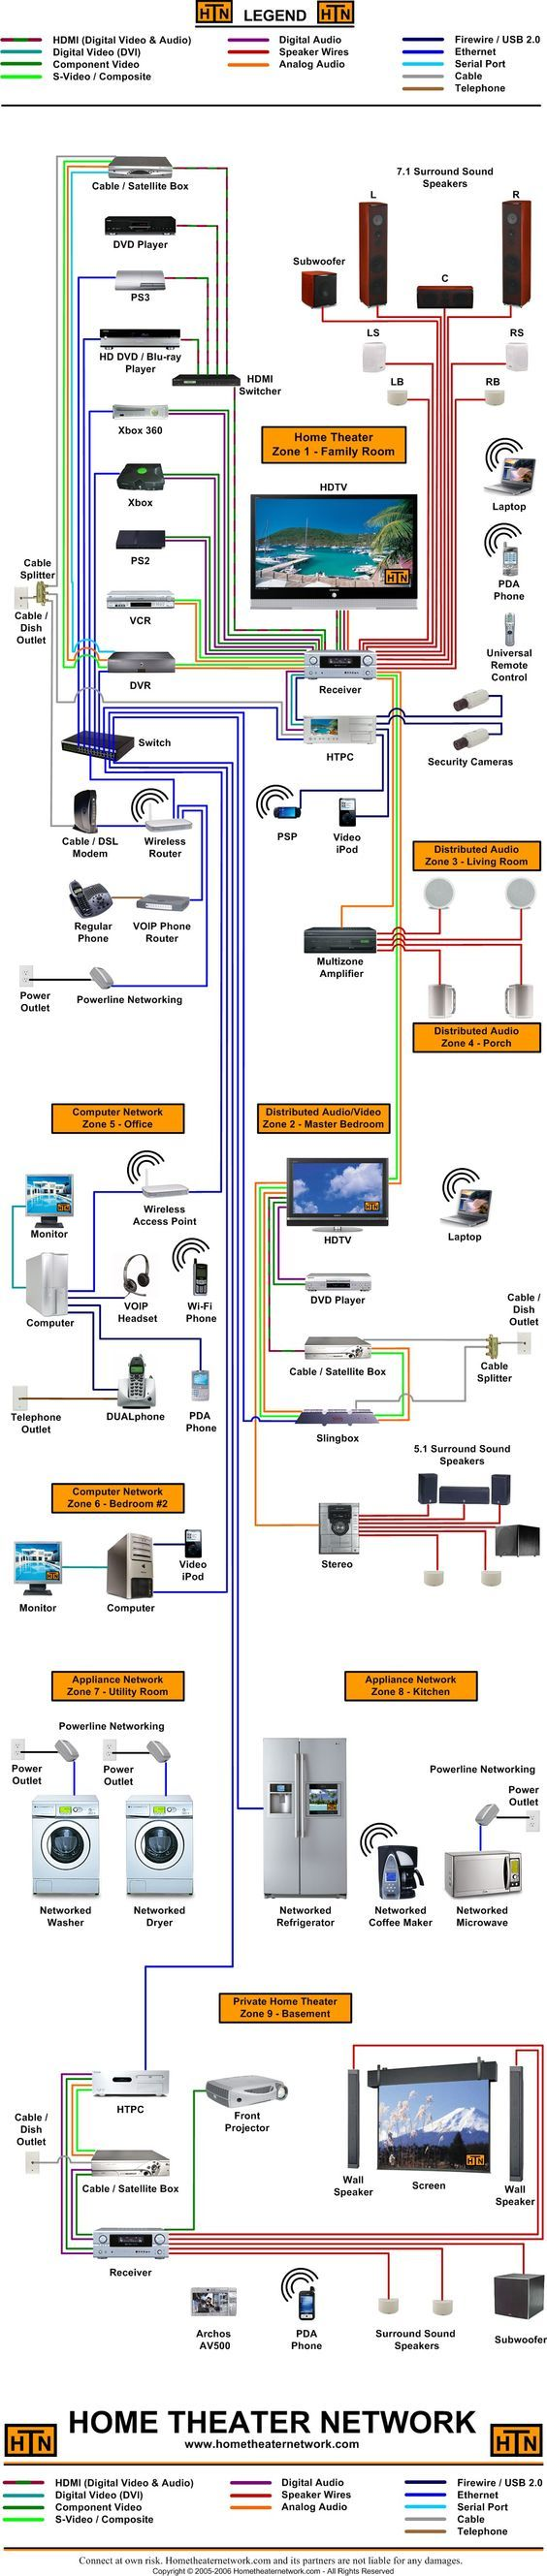 Home Theater Diagram 2: